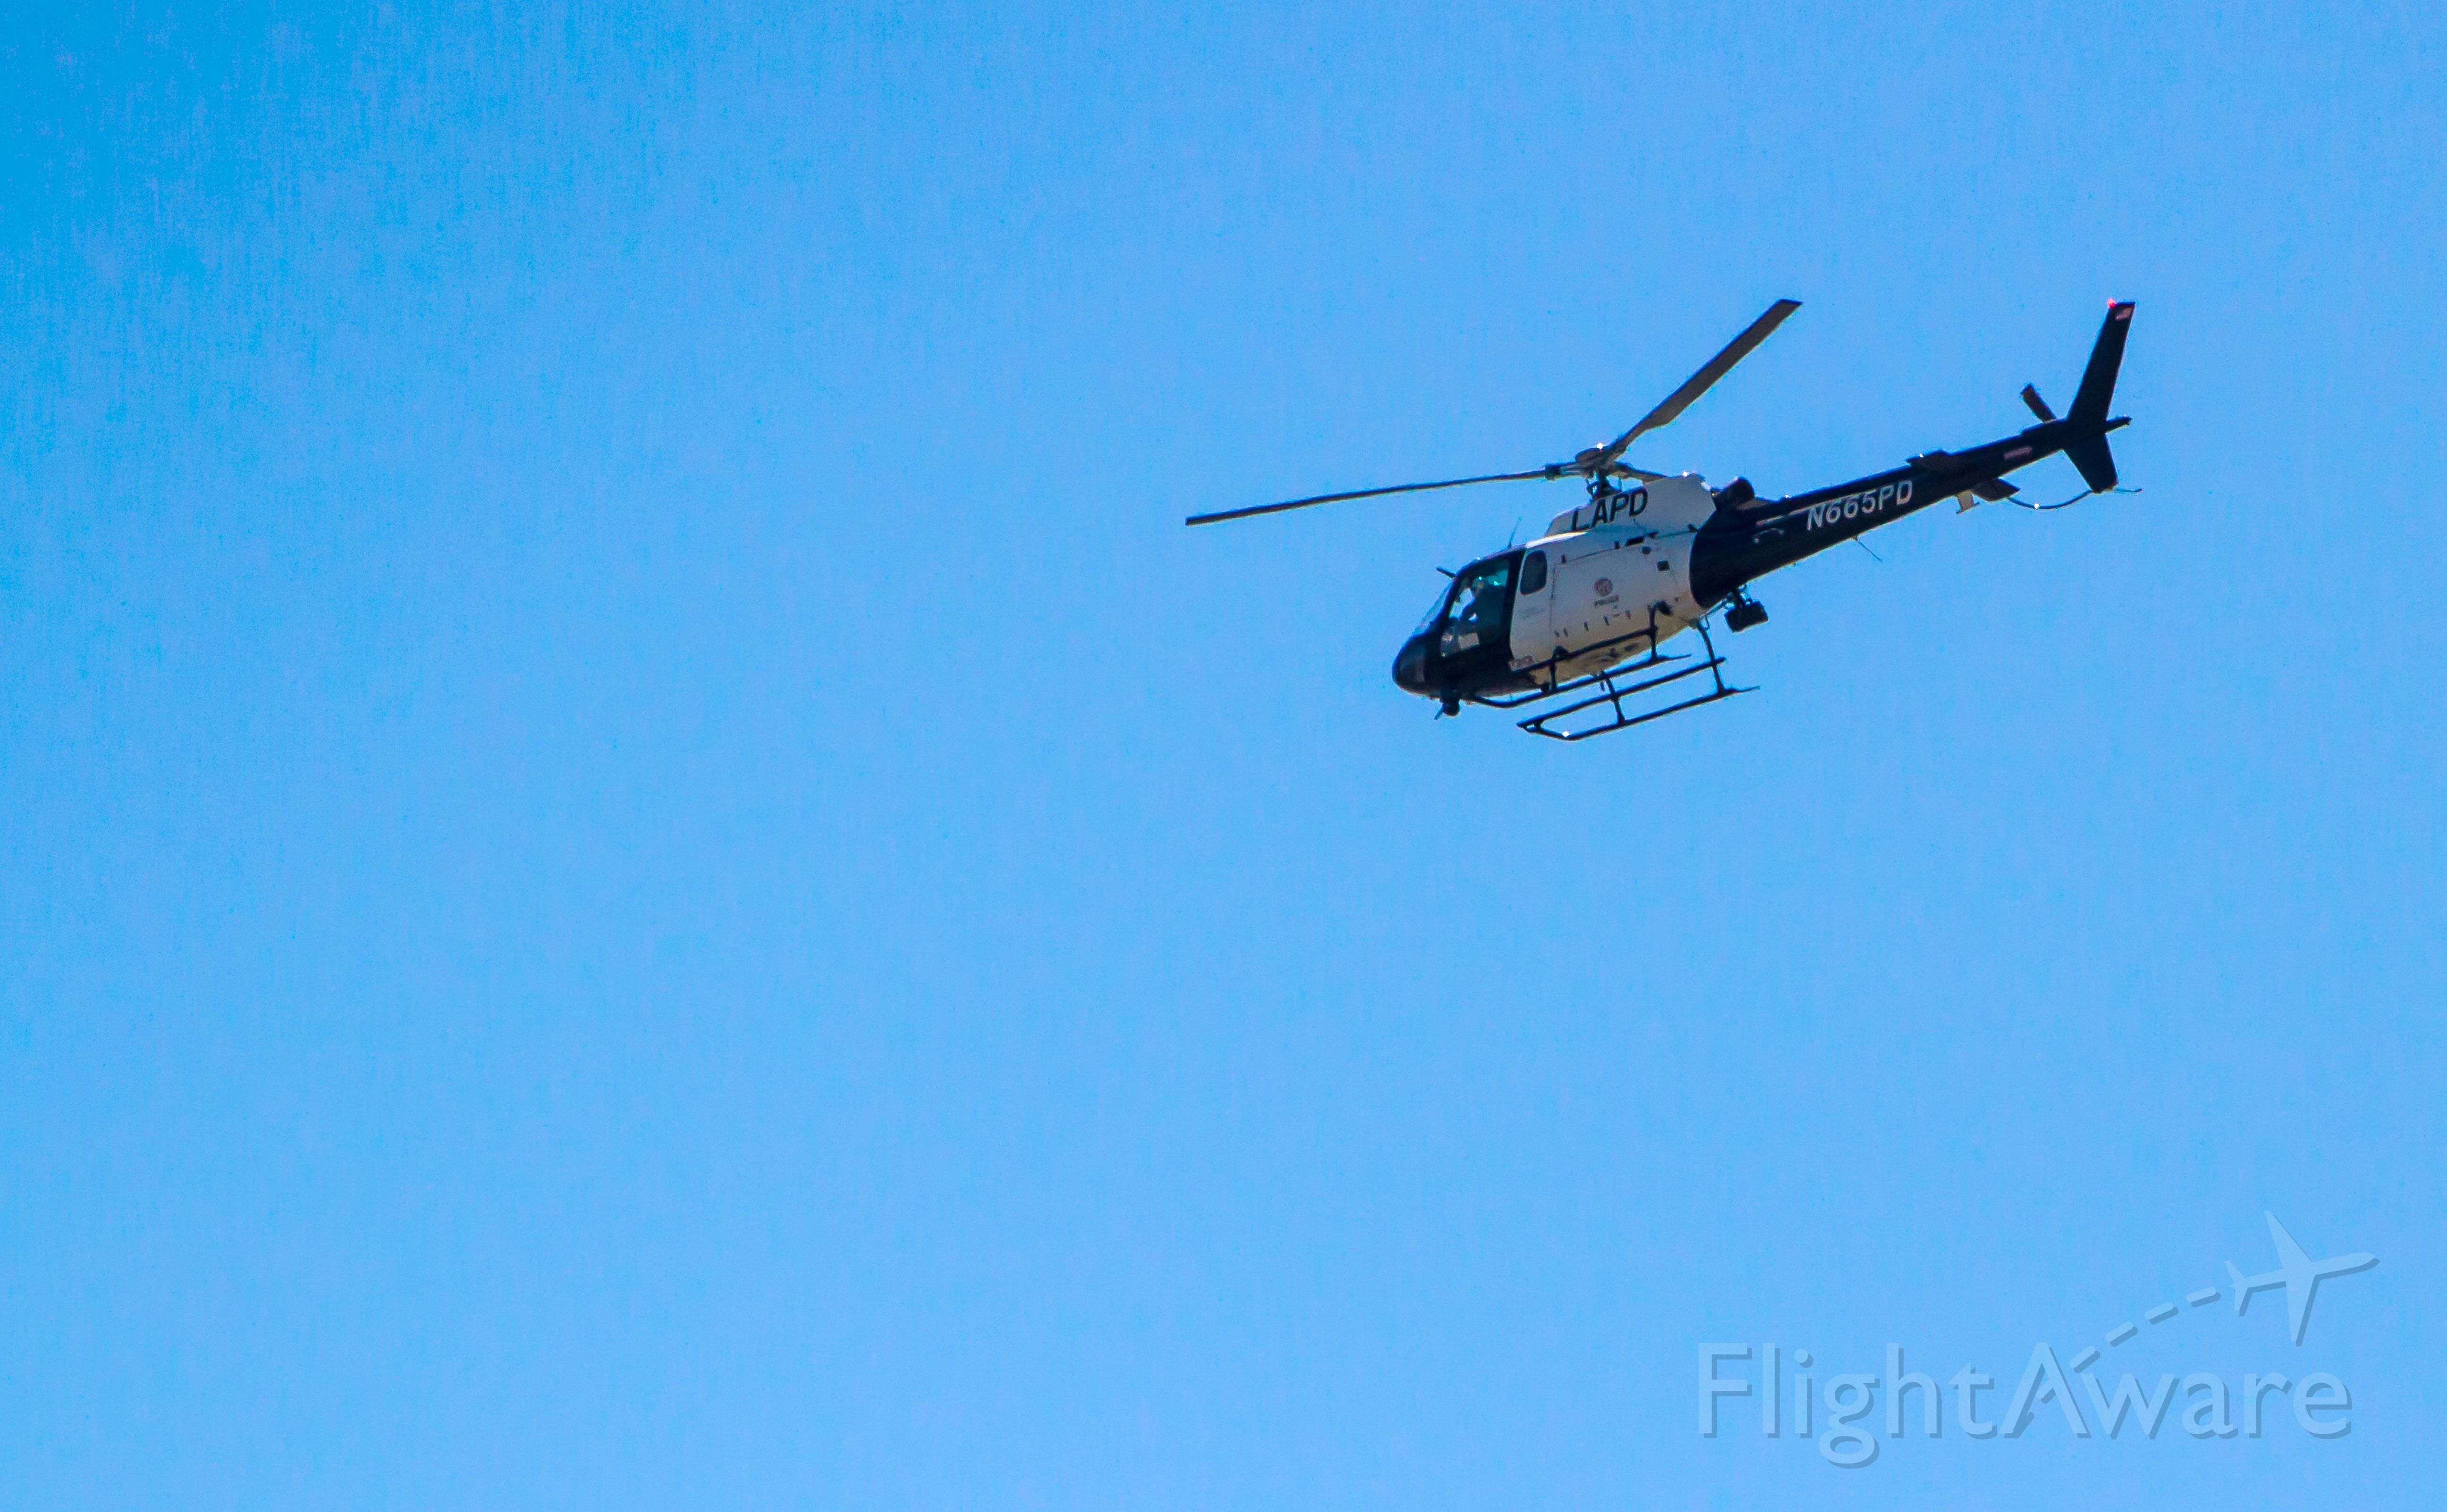 N665PD — - LAPD helicopter N665PD making a rare transition of KLGB airspace on Sunday, April 12, 2015